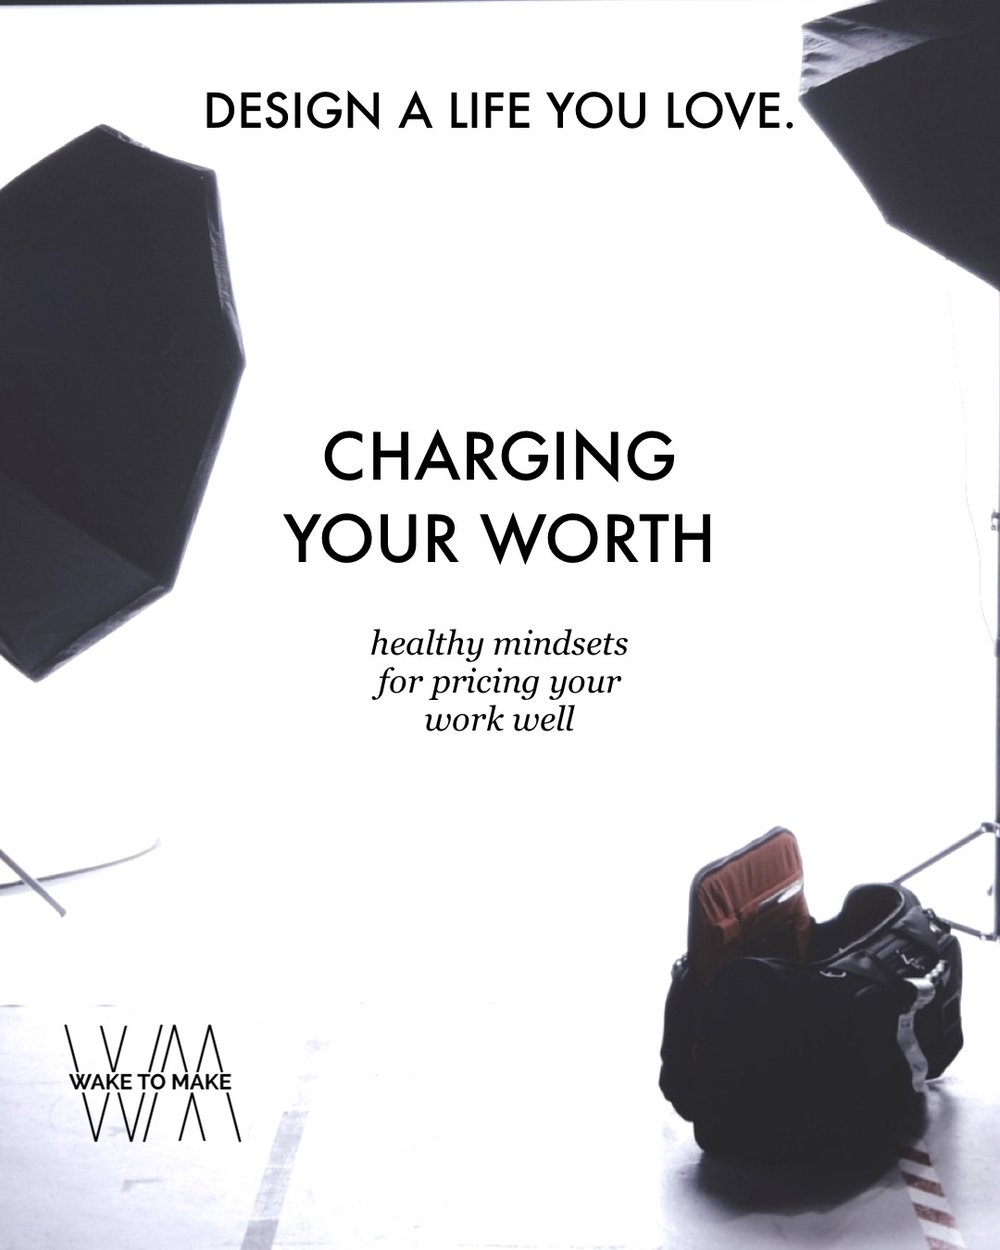 EPISODE 16 - CHARGING YOUR WORTH & HEALTHY MINDSETS FOR PRICING YOUR WORK WELL